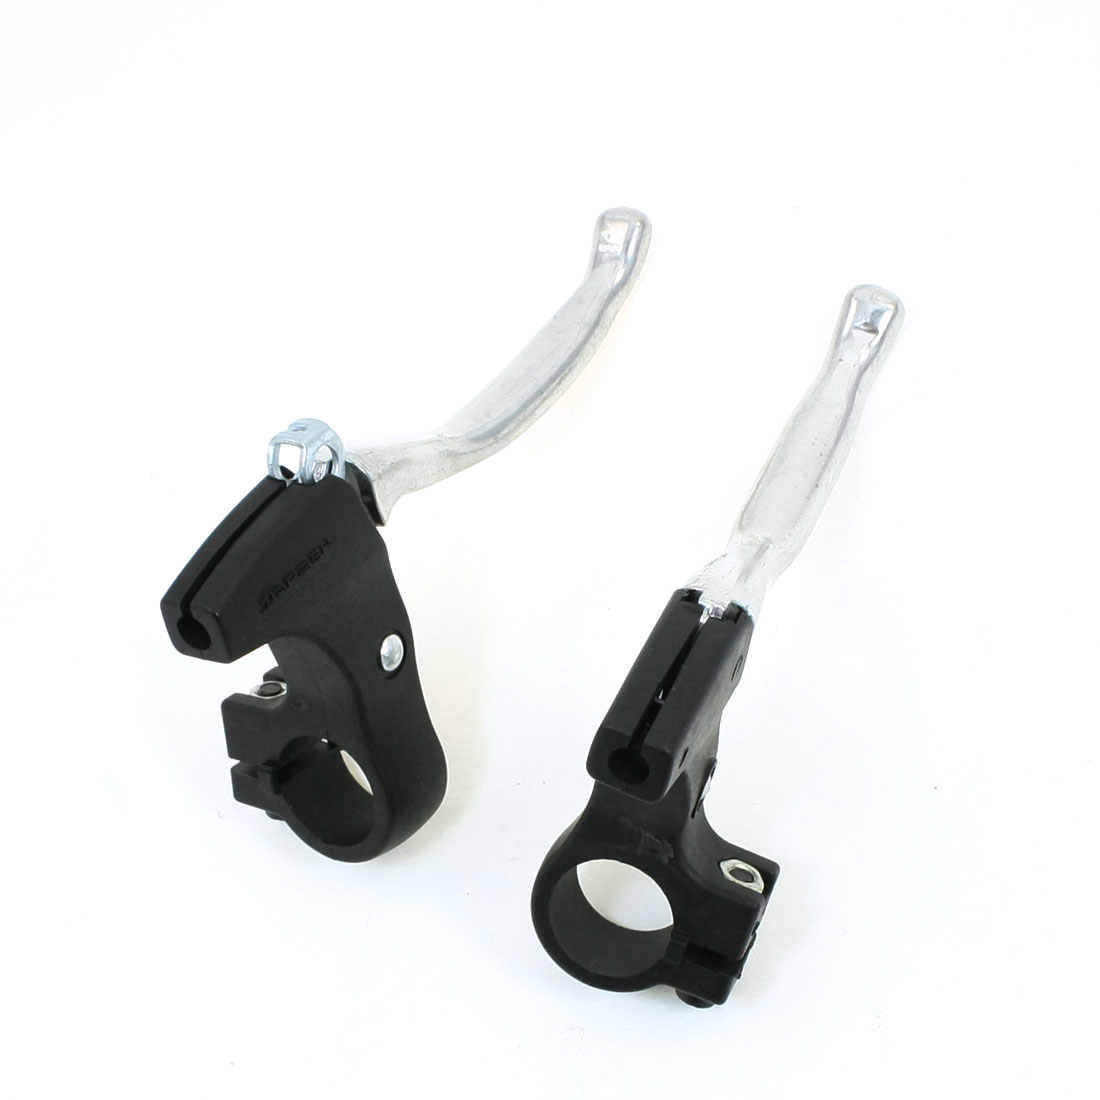 2 Pcs Black Silver Tone Bicycle Bike V-Brake Safty Brake Lever